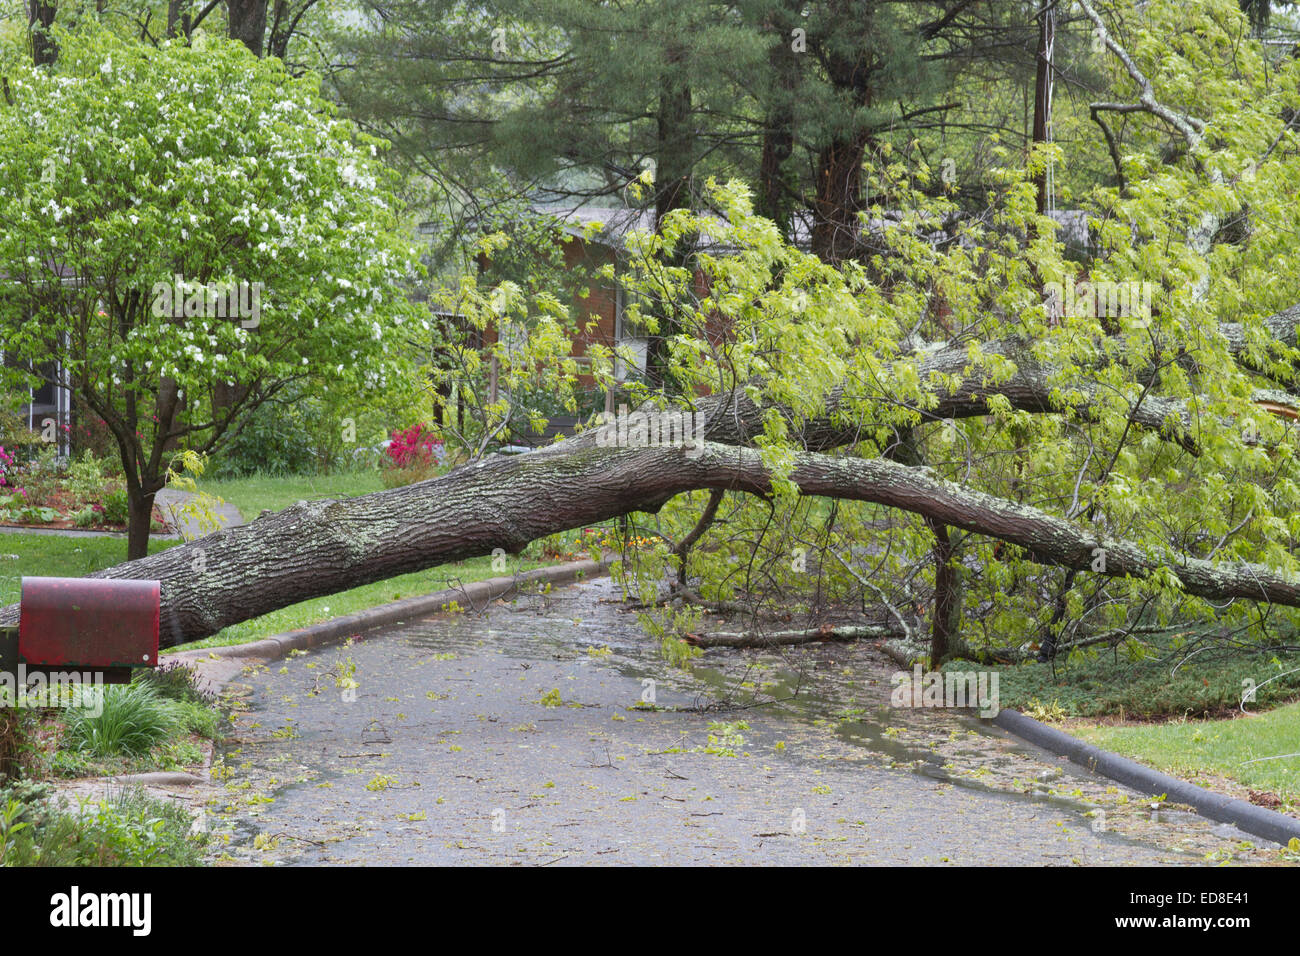 A neighborhood road is blocked by a large oak tree that has fallen and crumbled across the road after a spring storm - Stock Image